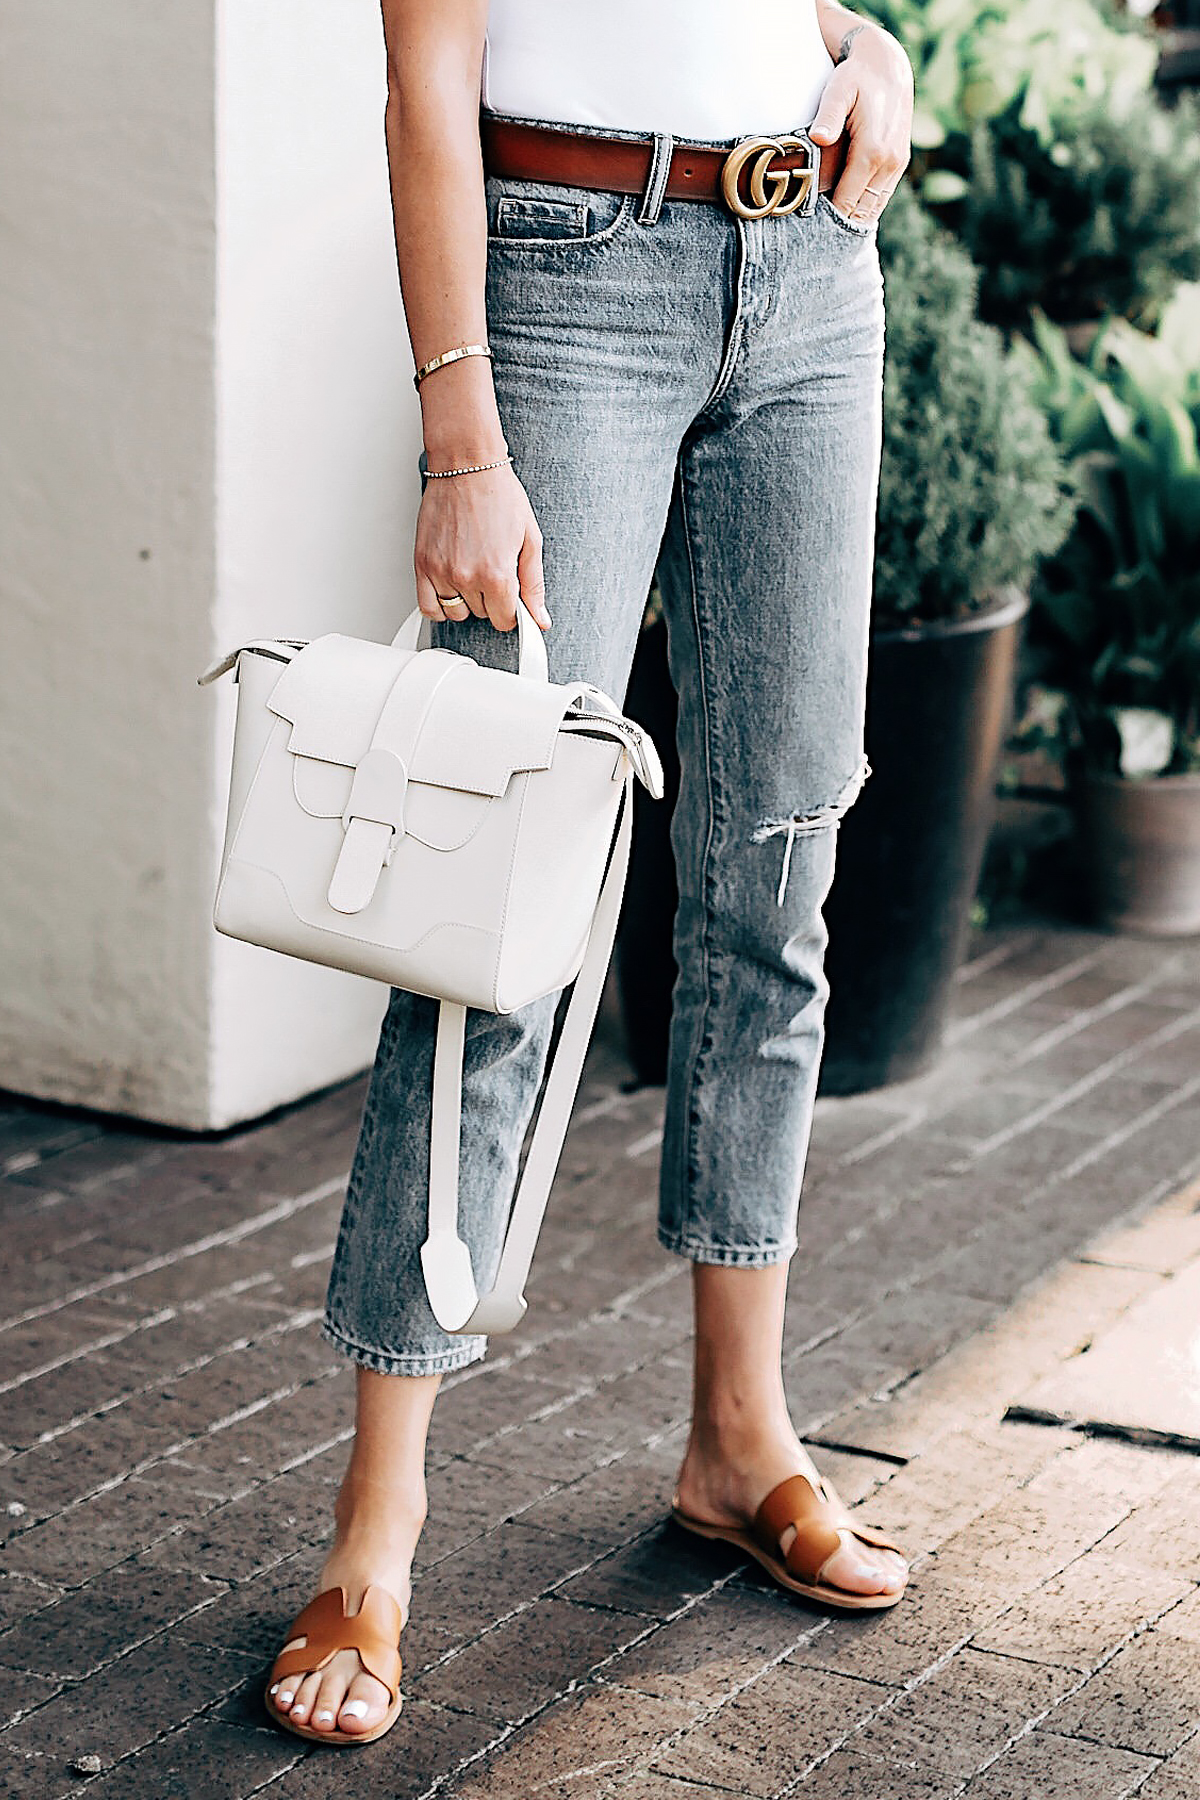 Woman Wearing Senreve Mini Maestra Cream Nordstrom Cropped Ripped Jeans Gucci Brown Leather Double G Belt Steven Greece Slides Fashion Jackson San Diego Fashion Blogger Street Style